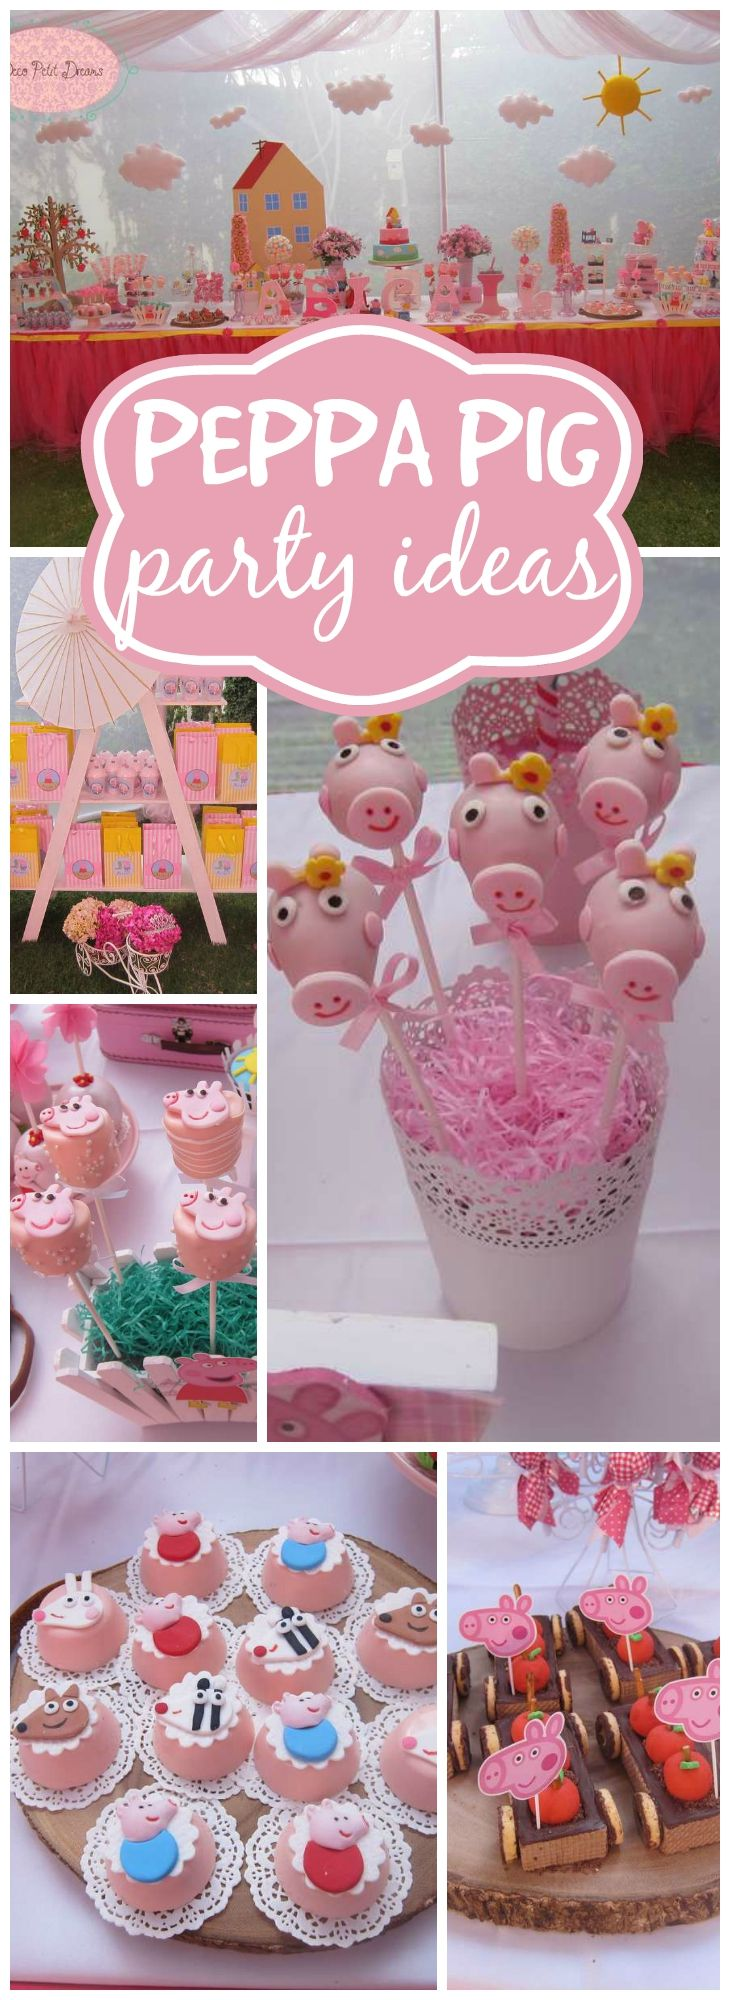 3rd birthday party themes for girl ; a374e33f4fbf463e2fcf17bb34c11694